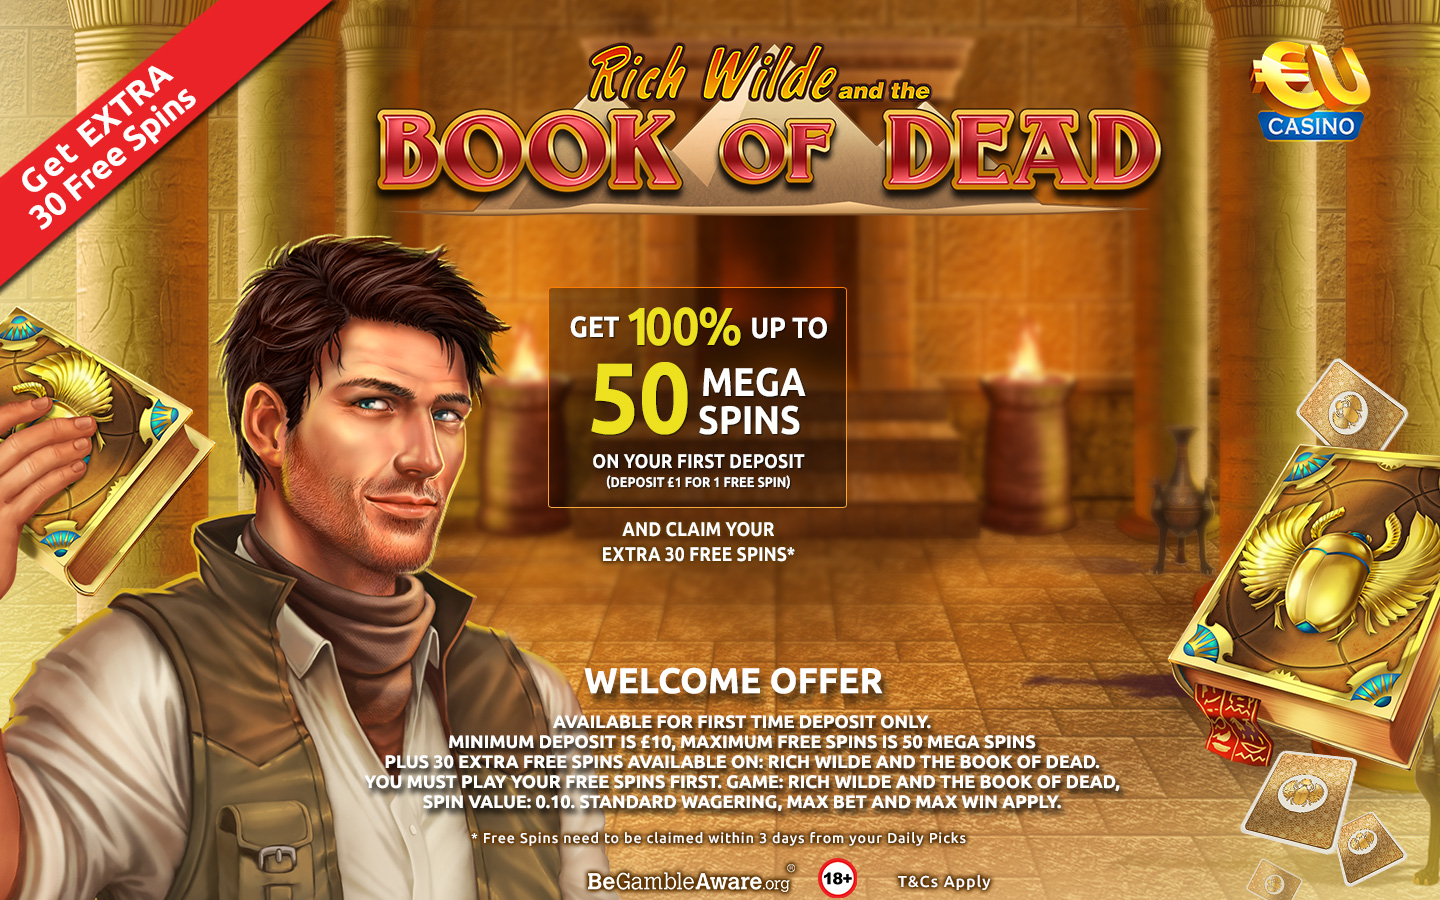 Special Welcome offer at EUcasino on Book of Dead Slot